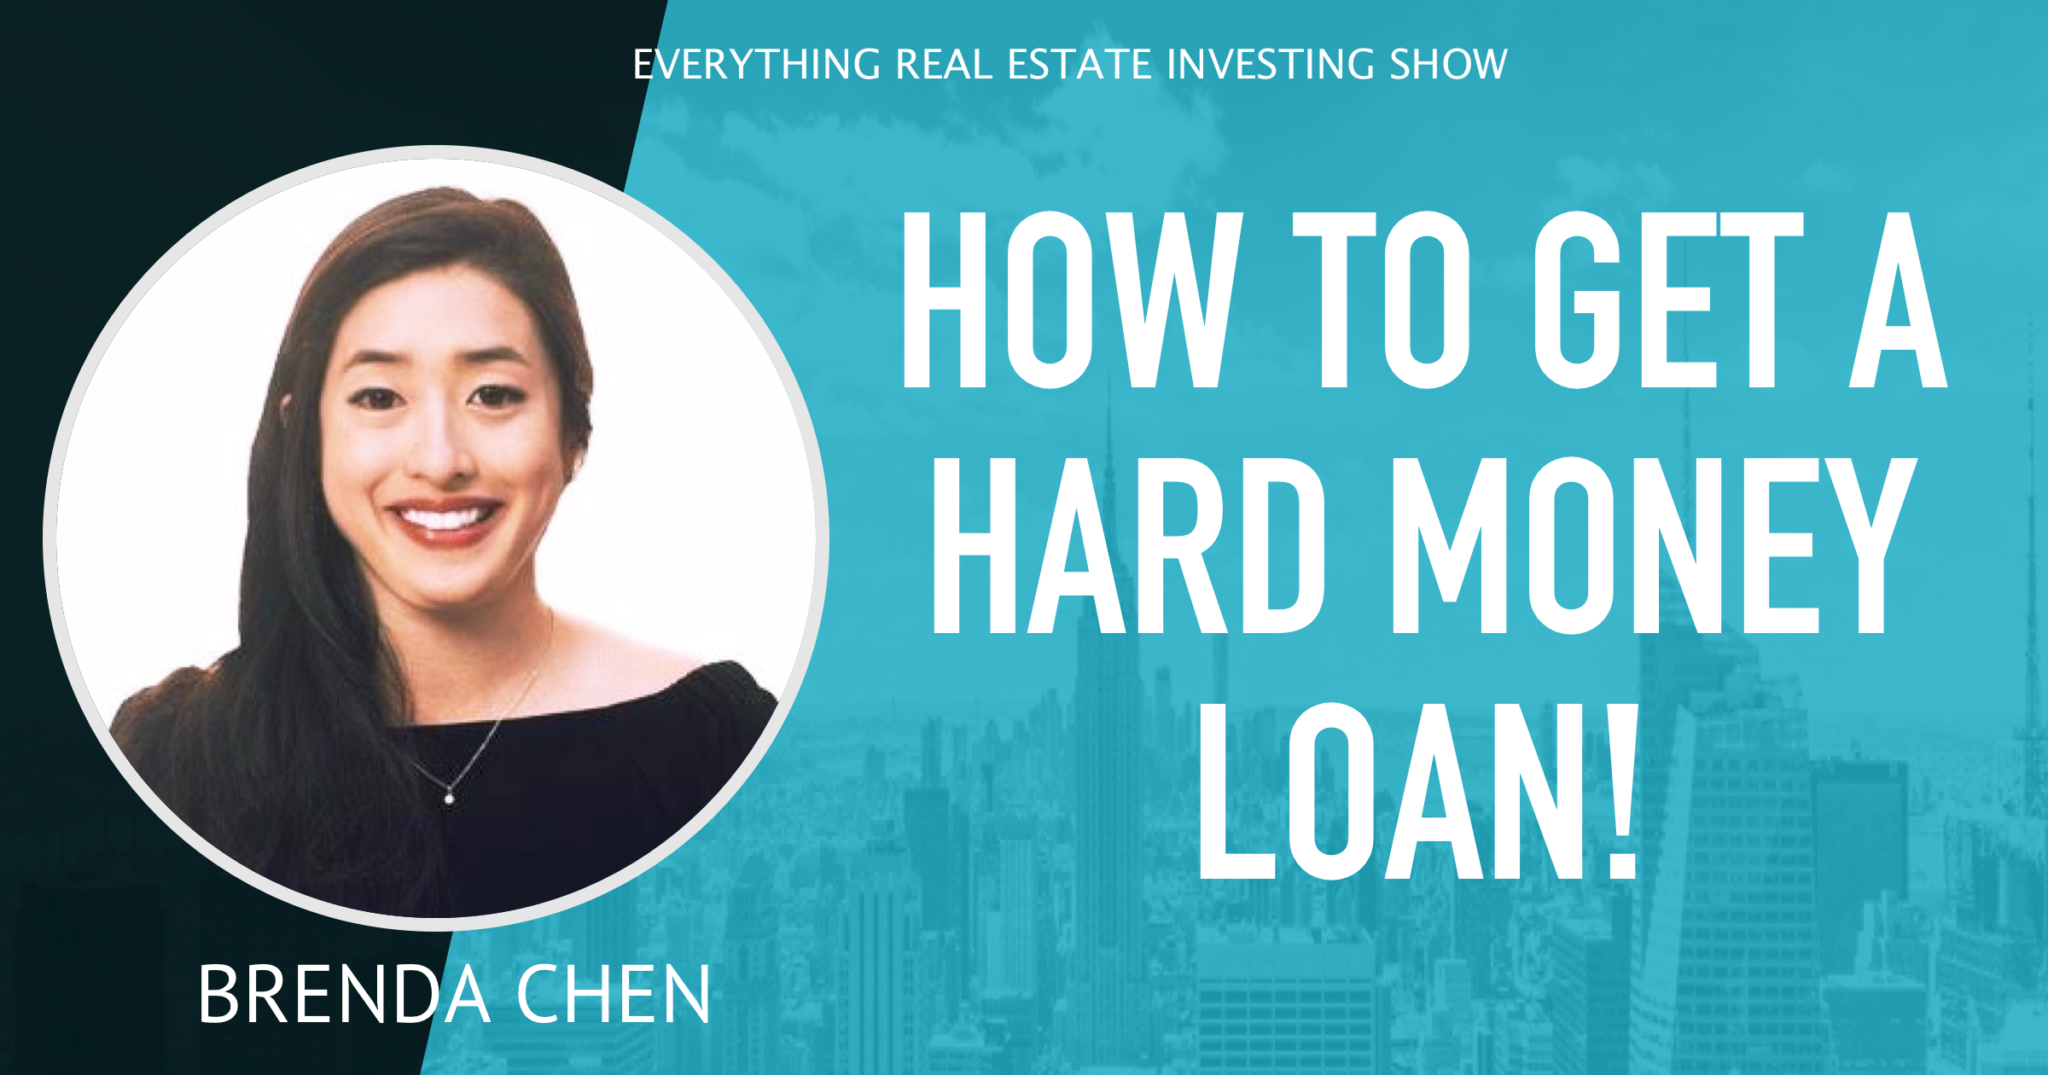 Click above to listen to my interview on the everything real estate investing show!!